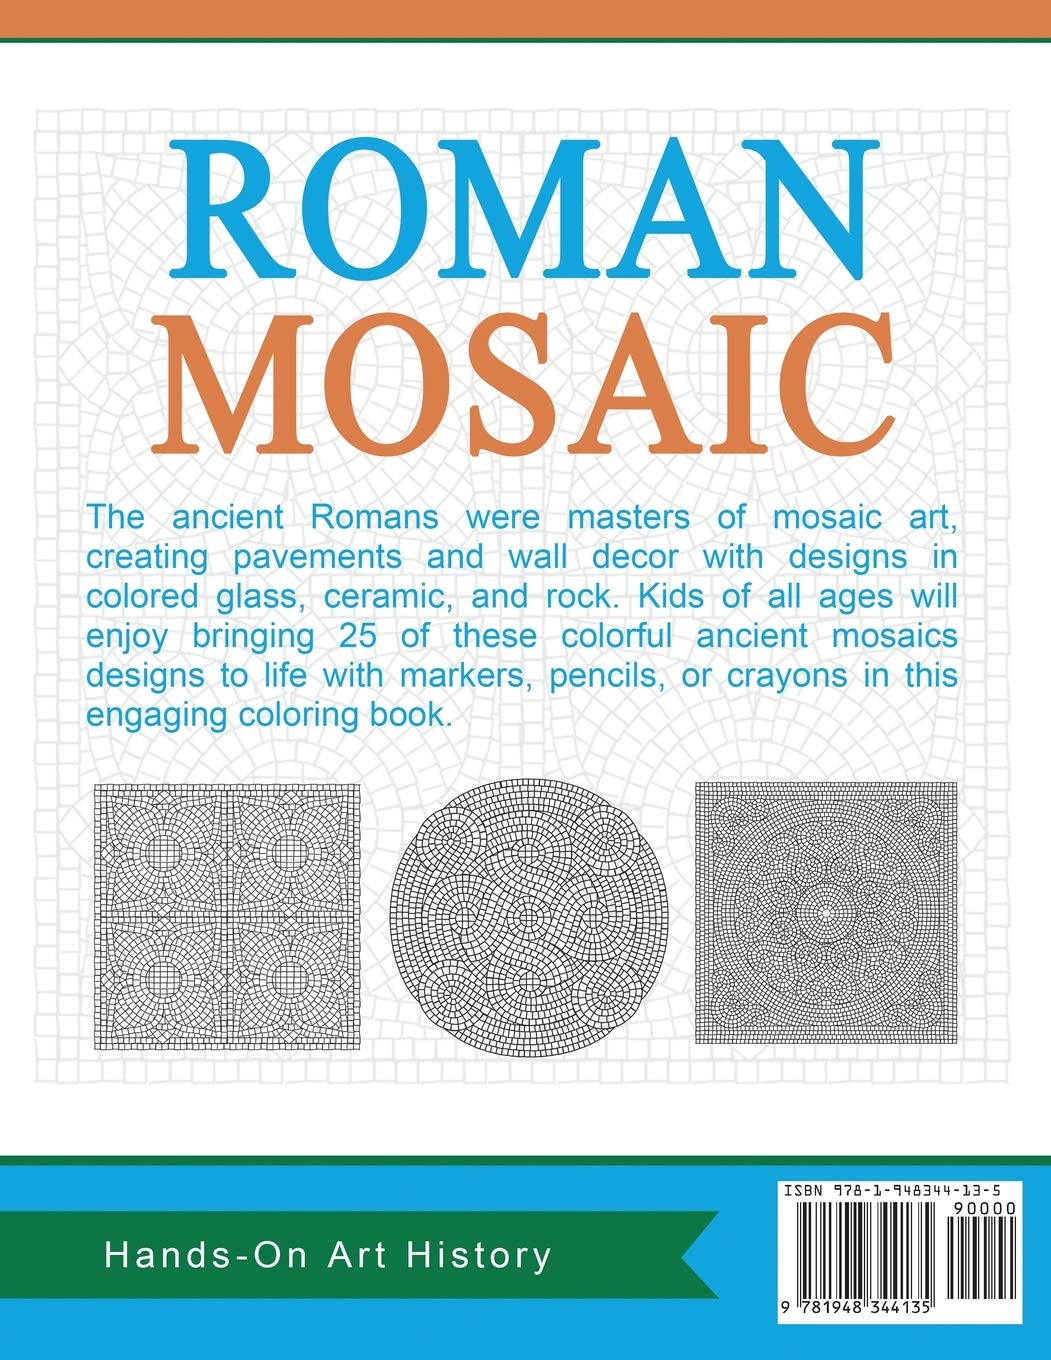 Roman Mosaic Coloring Pages For Kids And Kids At Heart Hands On Art History Volume 18 Art History Hands On 9781948344135 Amazon Com Books